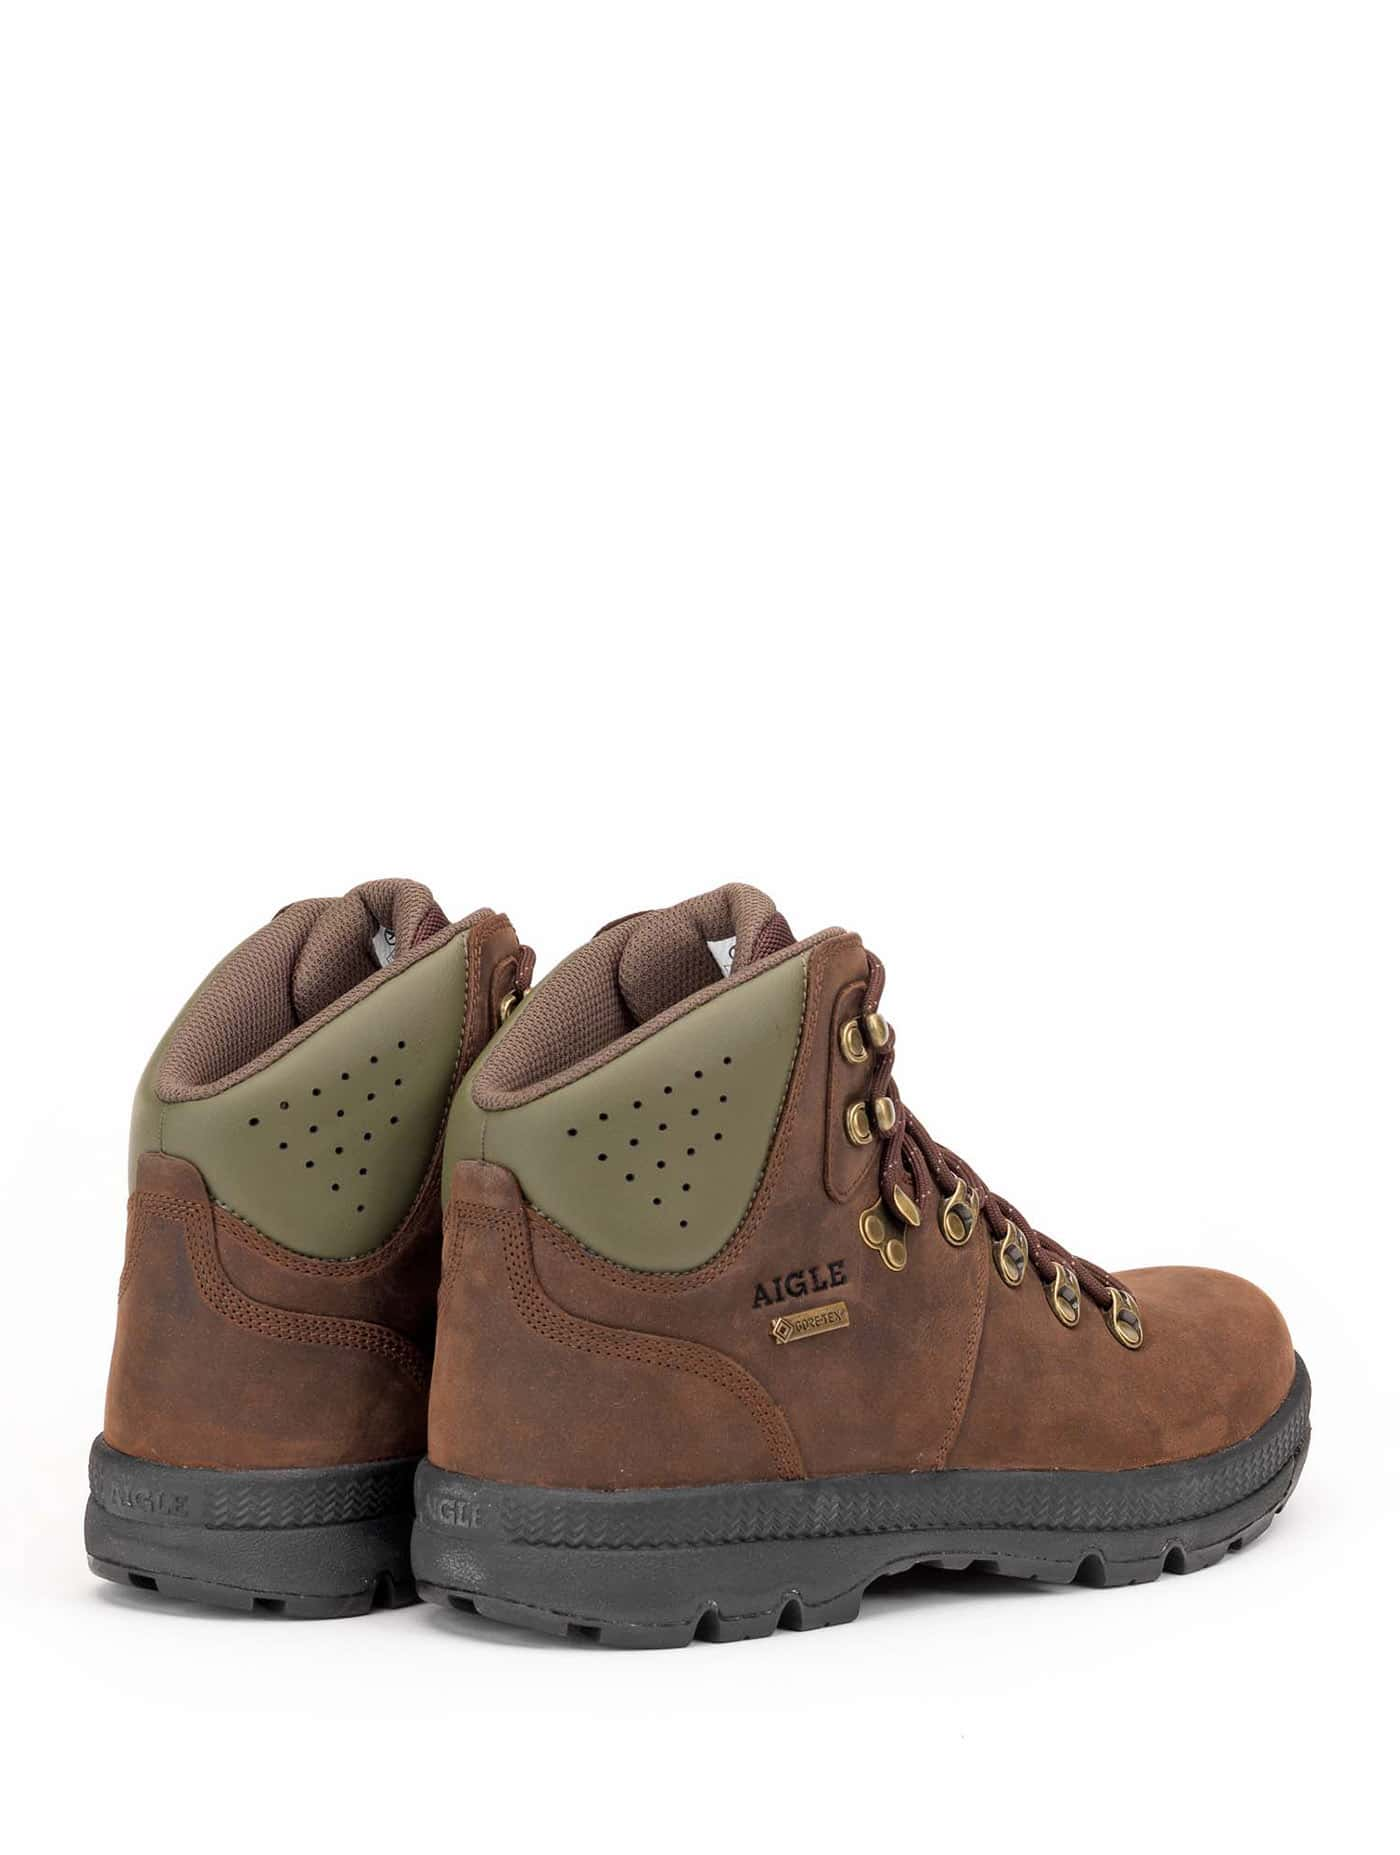 aigle mens gore tex boot